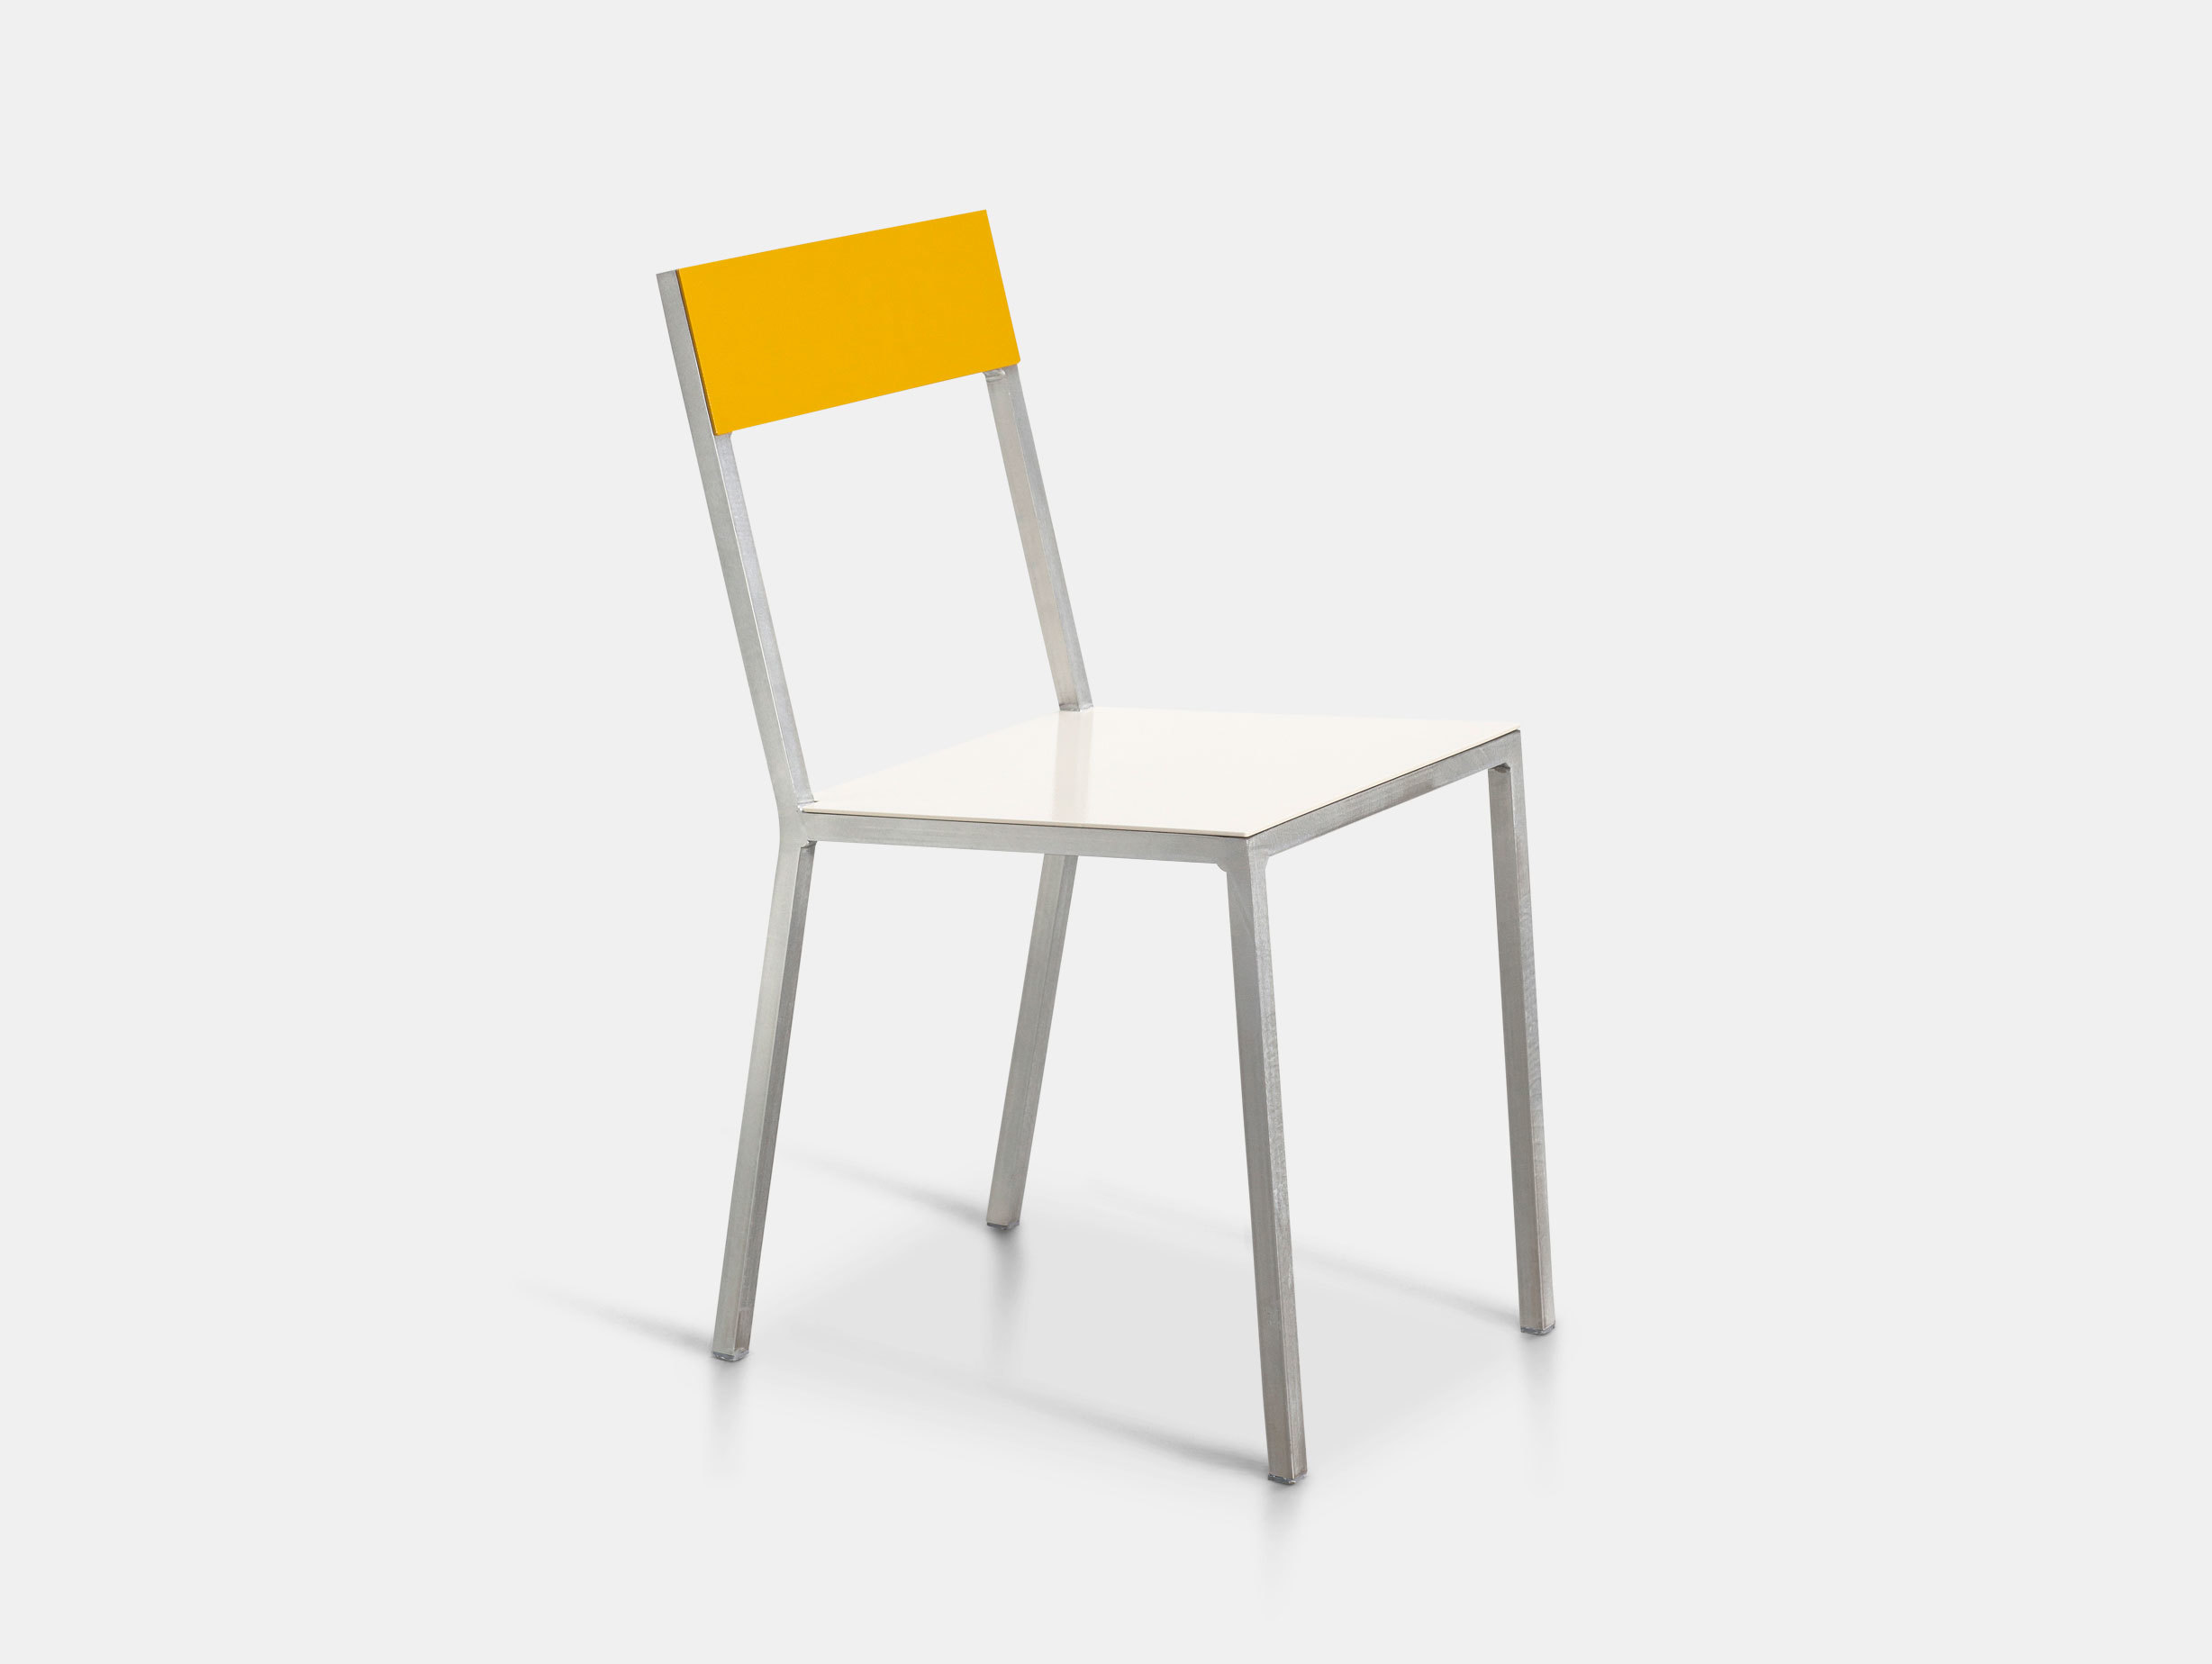 Valerie Objects Alu Chair Seatwhite Backyellow Muller Van Severen